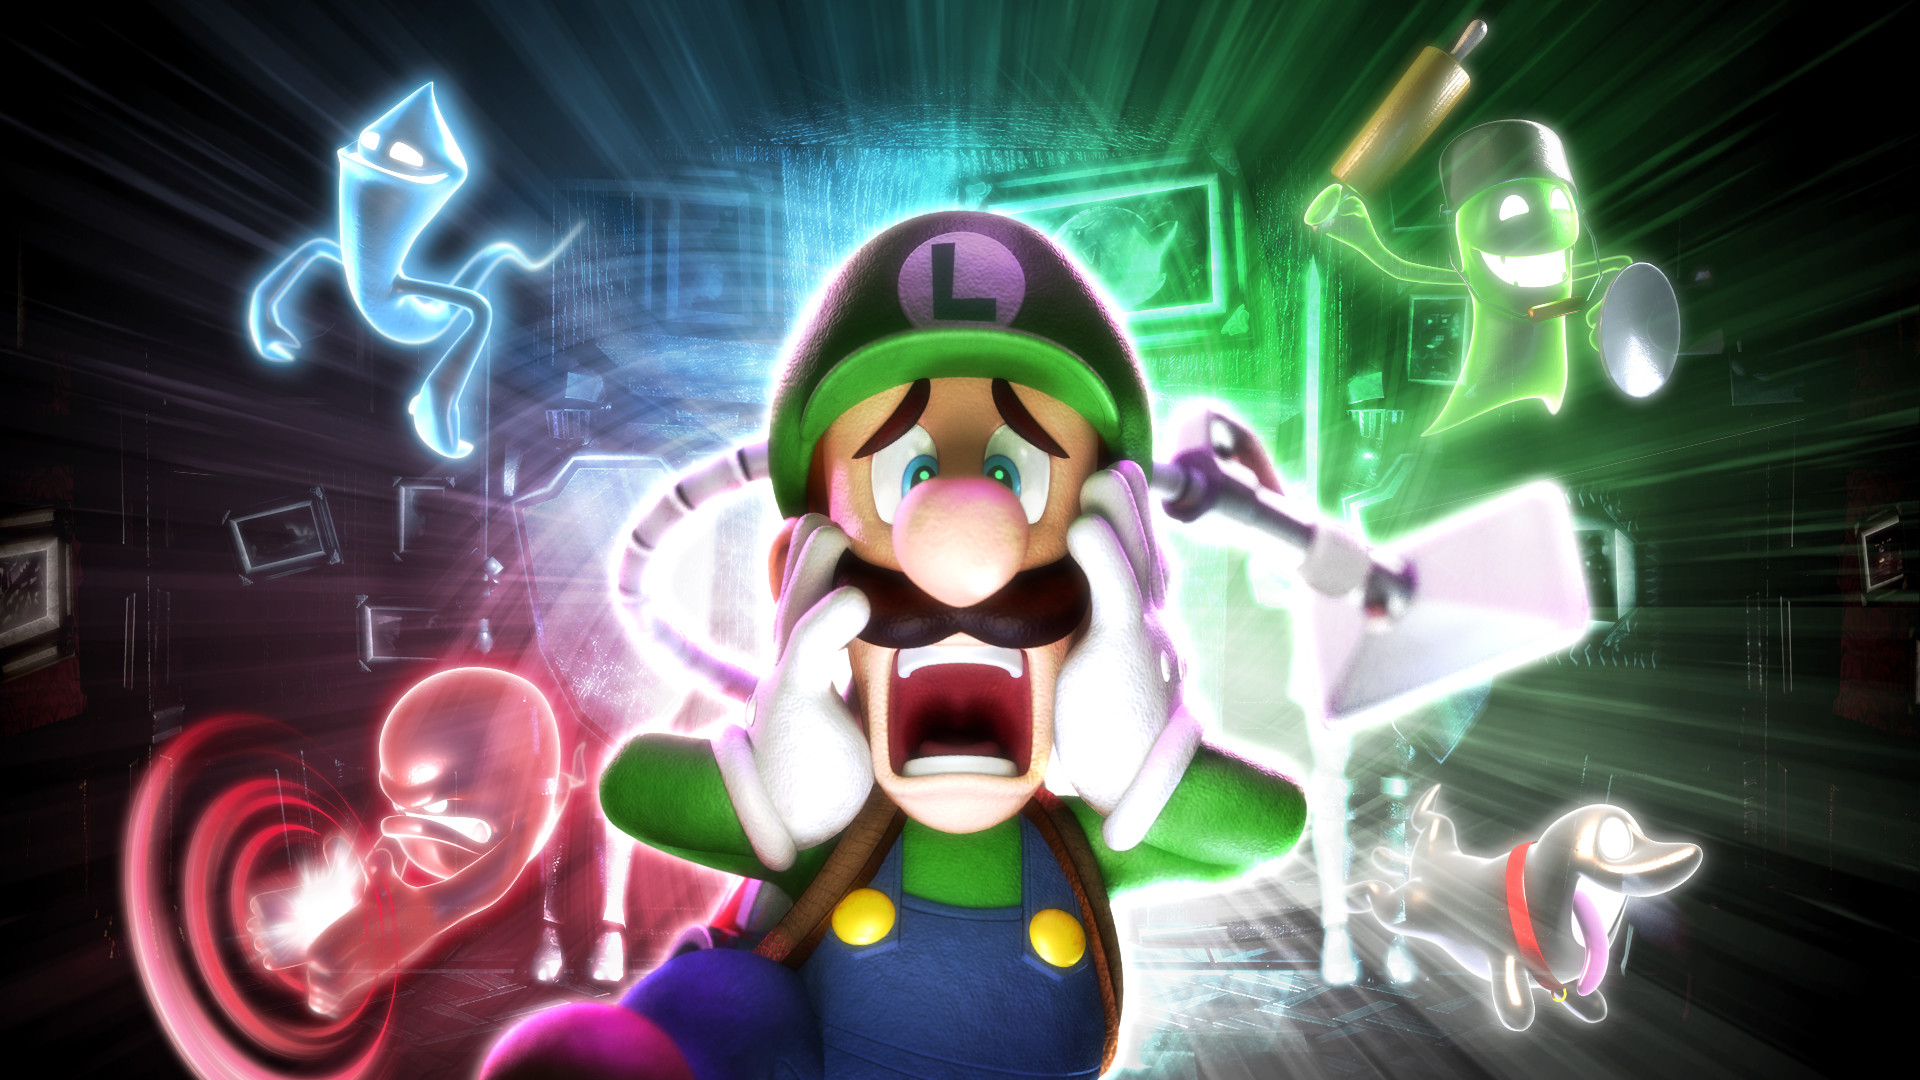 Cheer Luigi up and buy his game. You'll need a 3DS too,